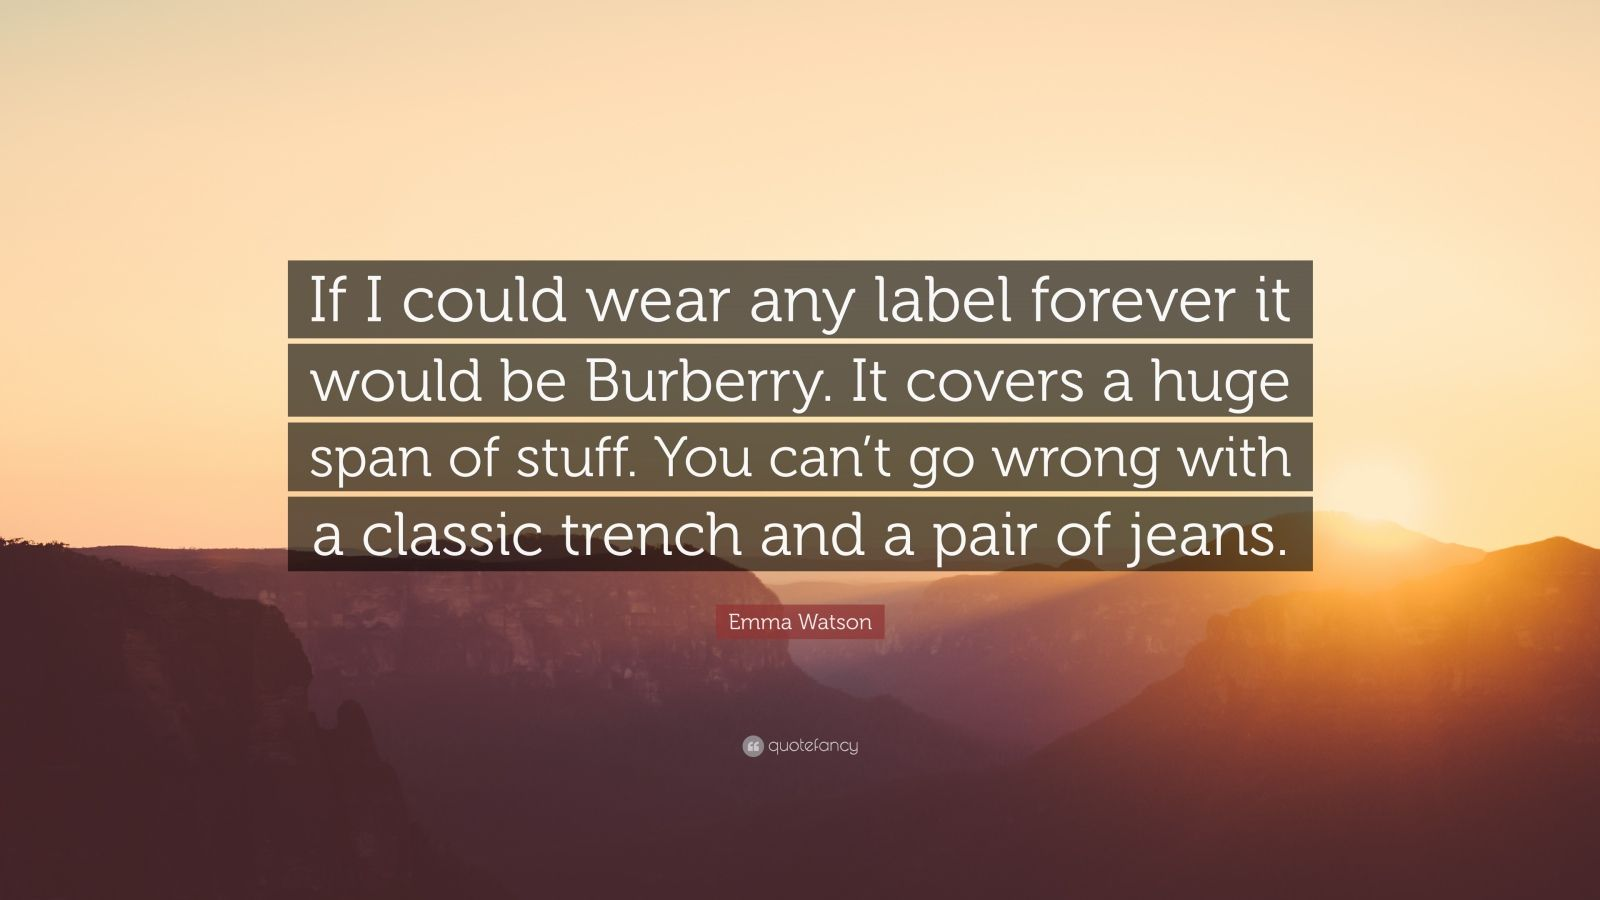 """Emma Watson Quote: """"If I could wear any label forever it would be Burberry. It covers a huge span of stuff. You can't go wrong with a classic trench and a pair of jeans."""""""